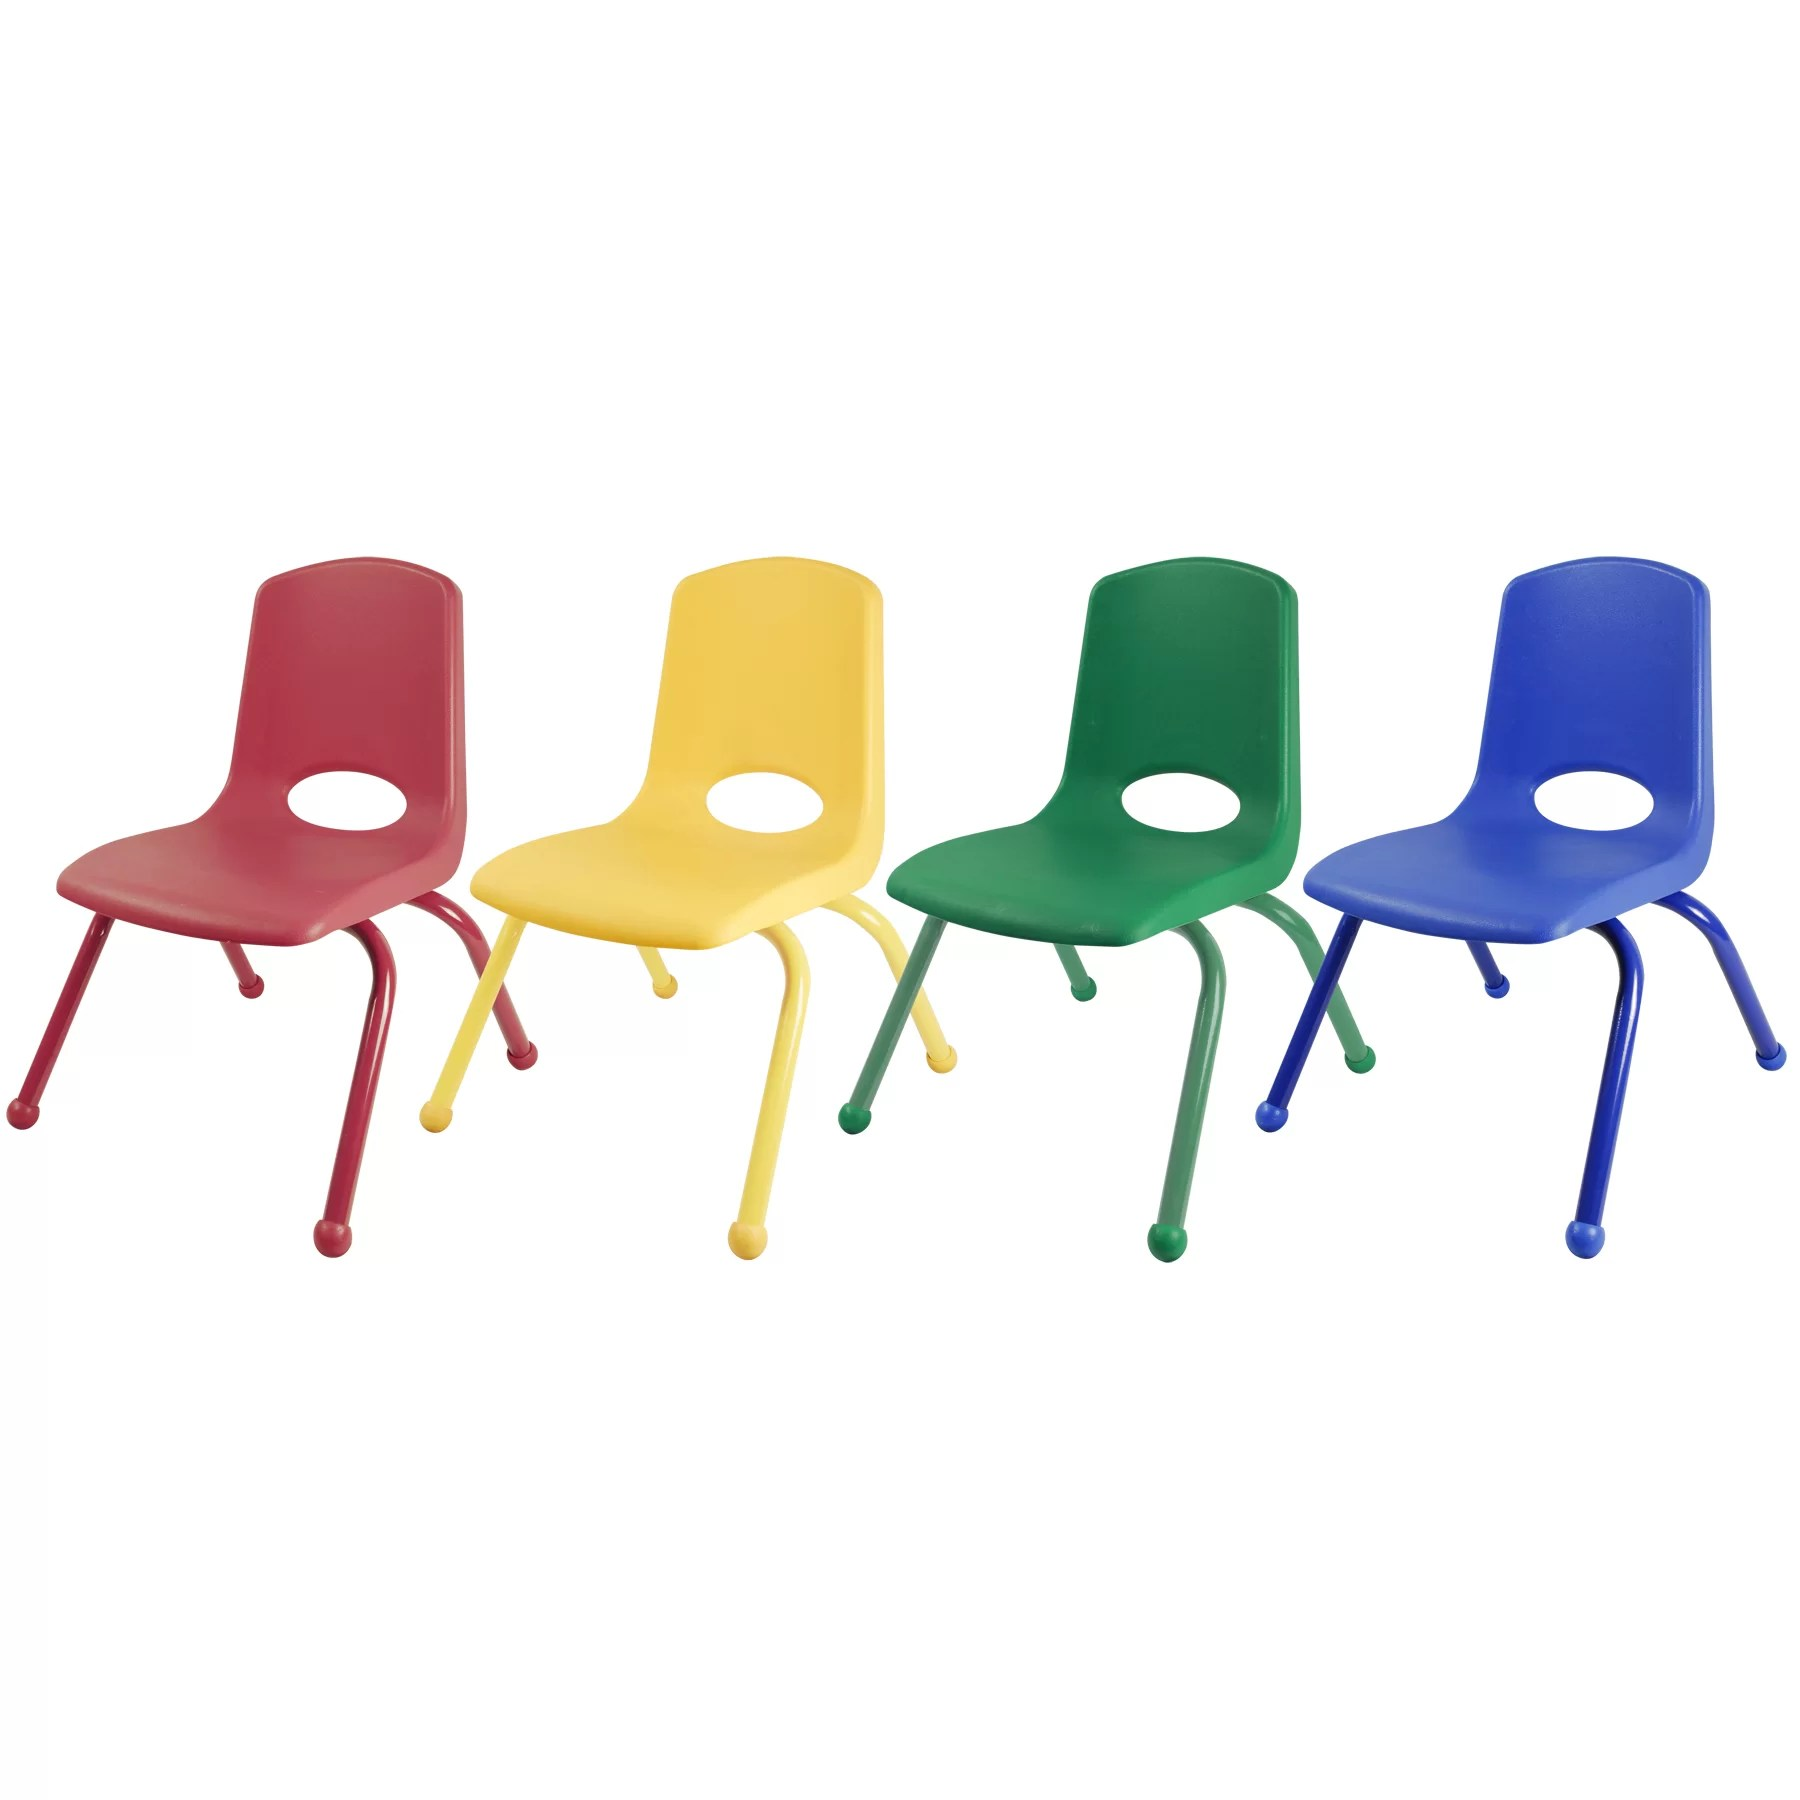 Kids School Chairs Ecr4kids Plastic Classroom Chair And Reviews Wayfair